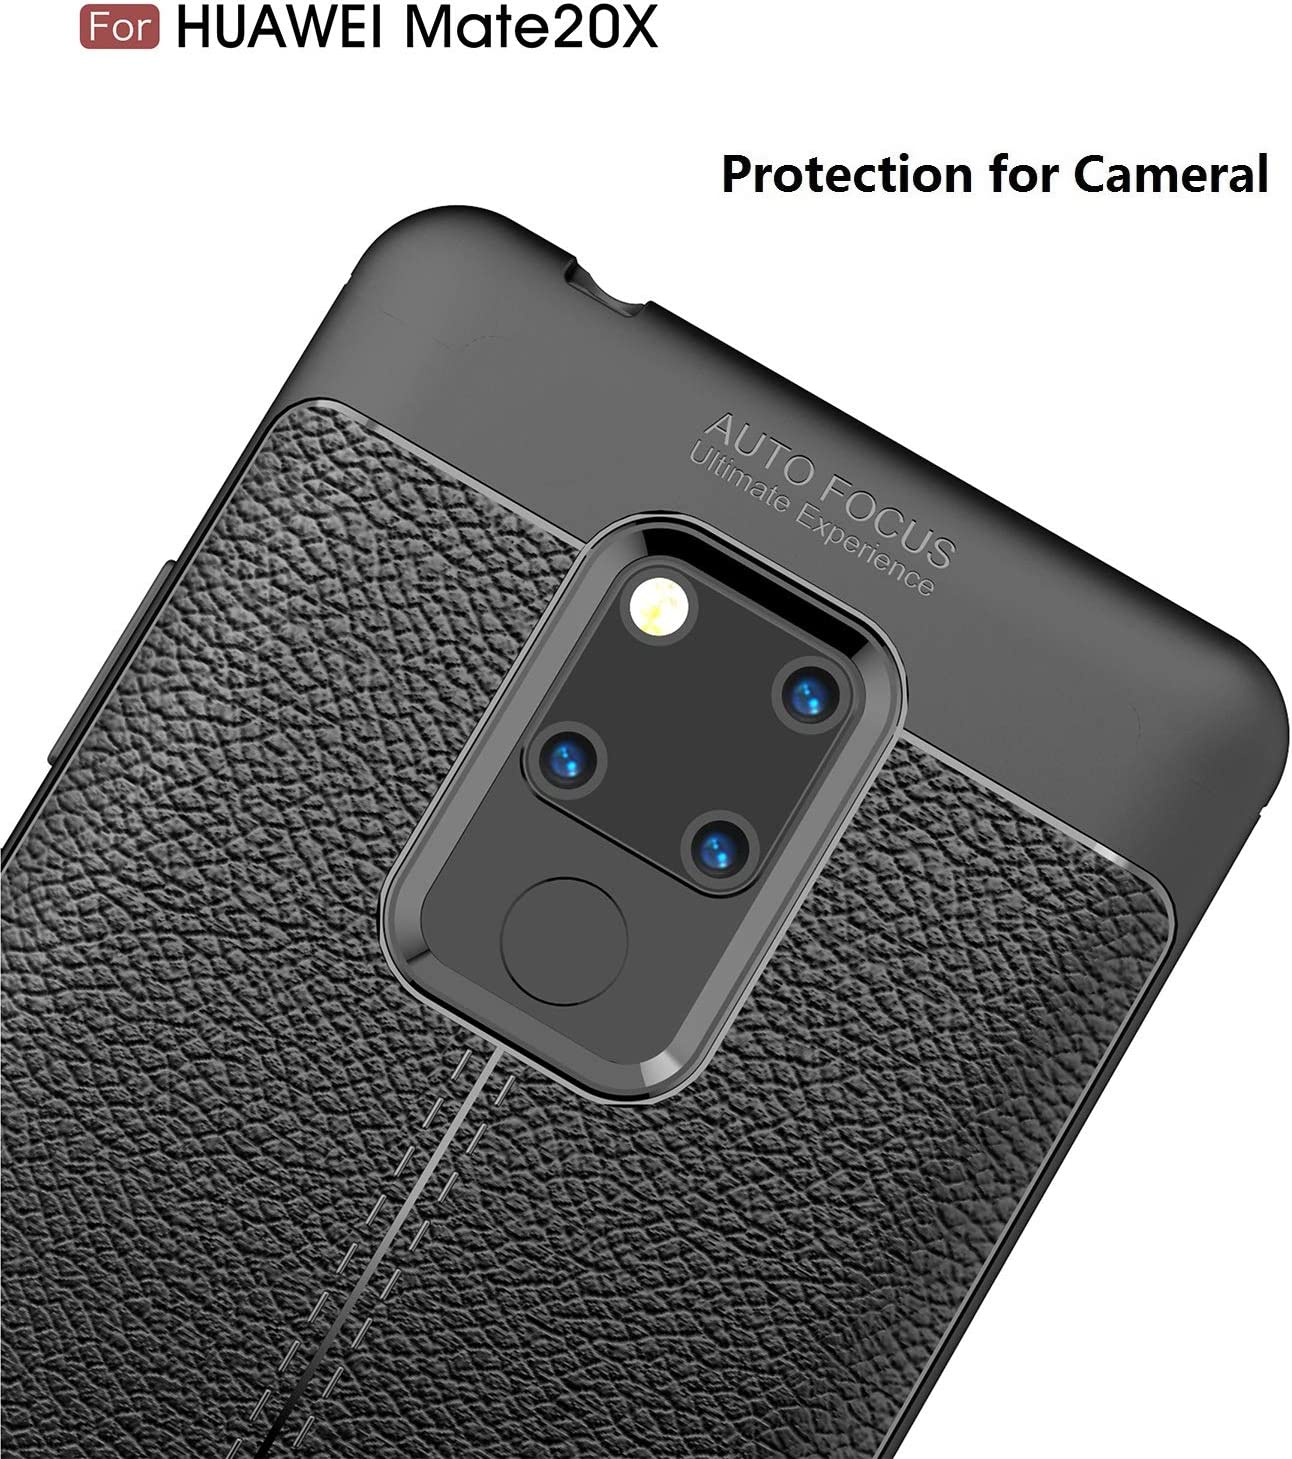 Gray Flexible Slim Case with Leather Texture Grip Pattern and Shock Absorption TPU Cover for Huawei Mate 20X Cruzerlite Funda Huawei Mate 20X Funda Mate 20X